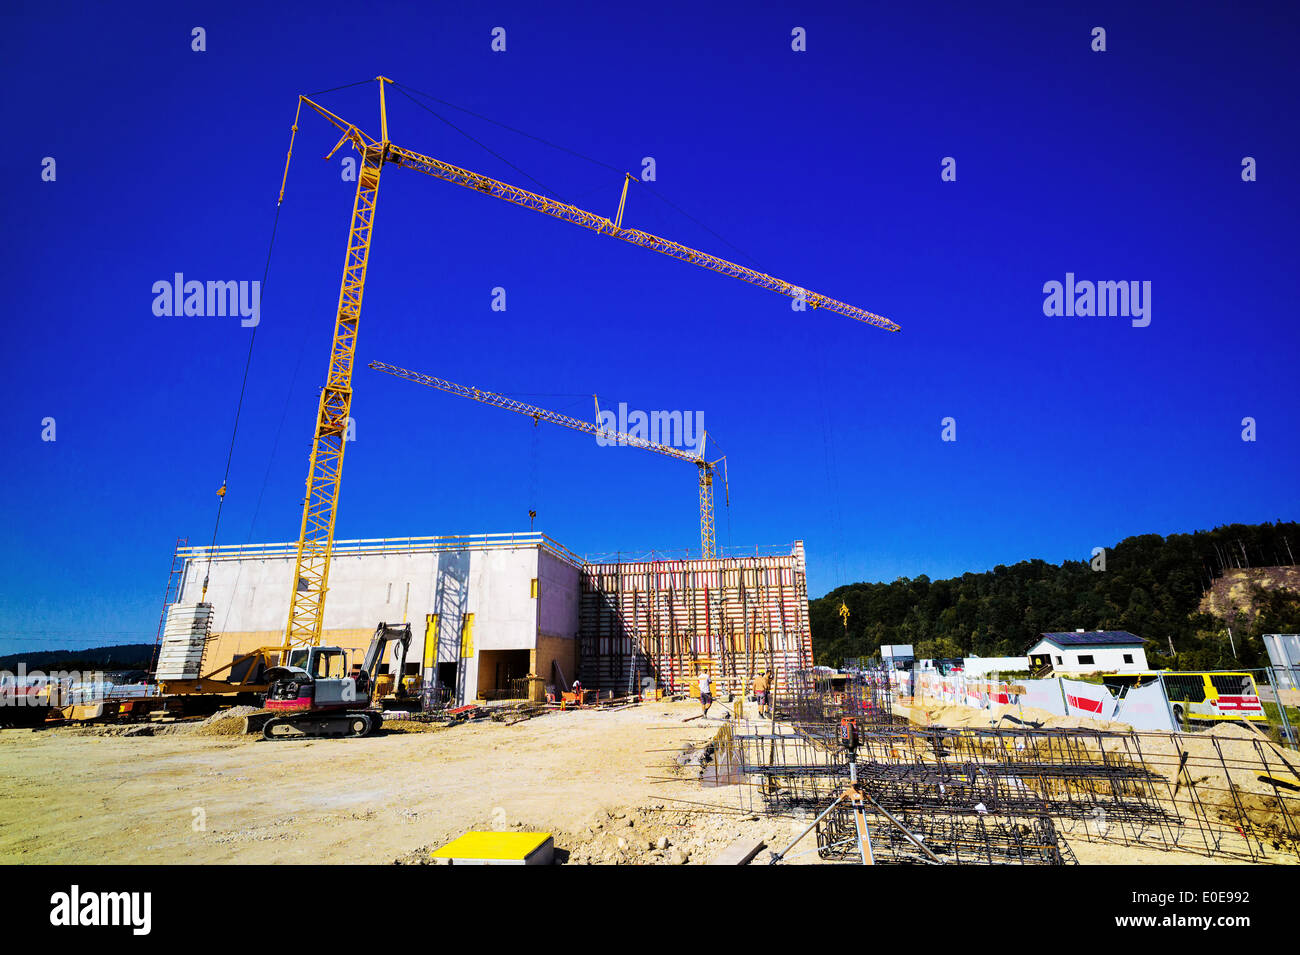 A construction crane on a building site of an industrial building. Before blue sky with text clearance, Ein Baukran auf einer Ba - Stock Image